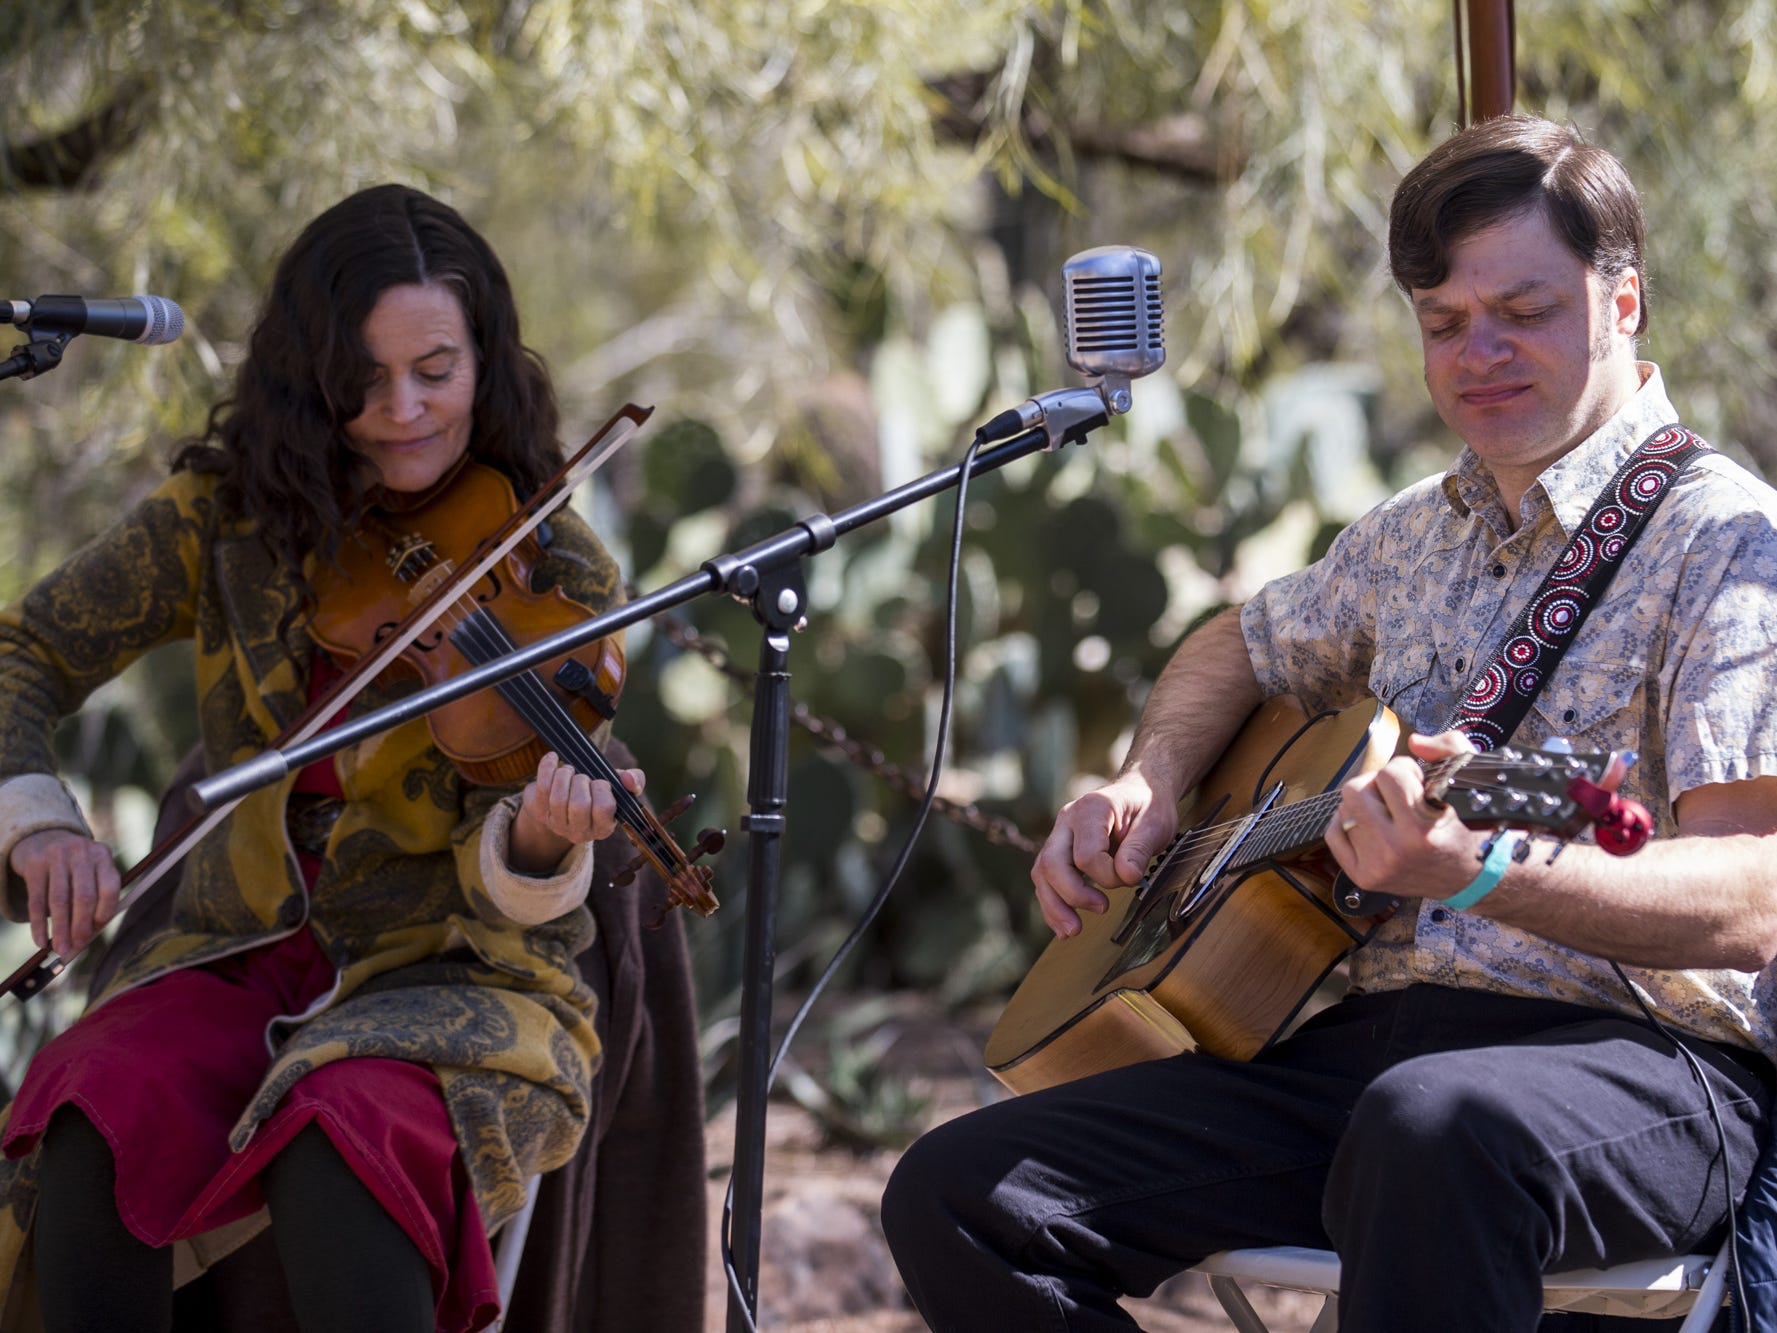 Carolyn Camp Duo perform during Day 1 of the Devour Culinary Classic on Saturday, Feb. 23, 2019, at Desert Botanical Garden in Phoenix.